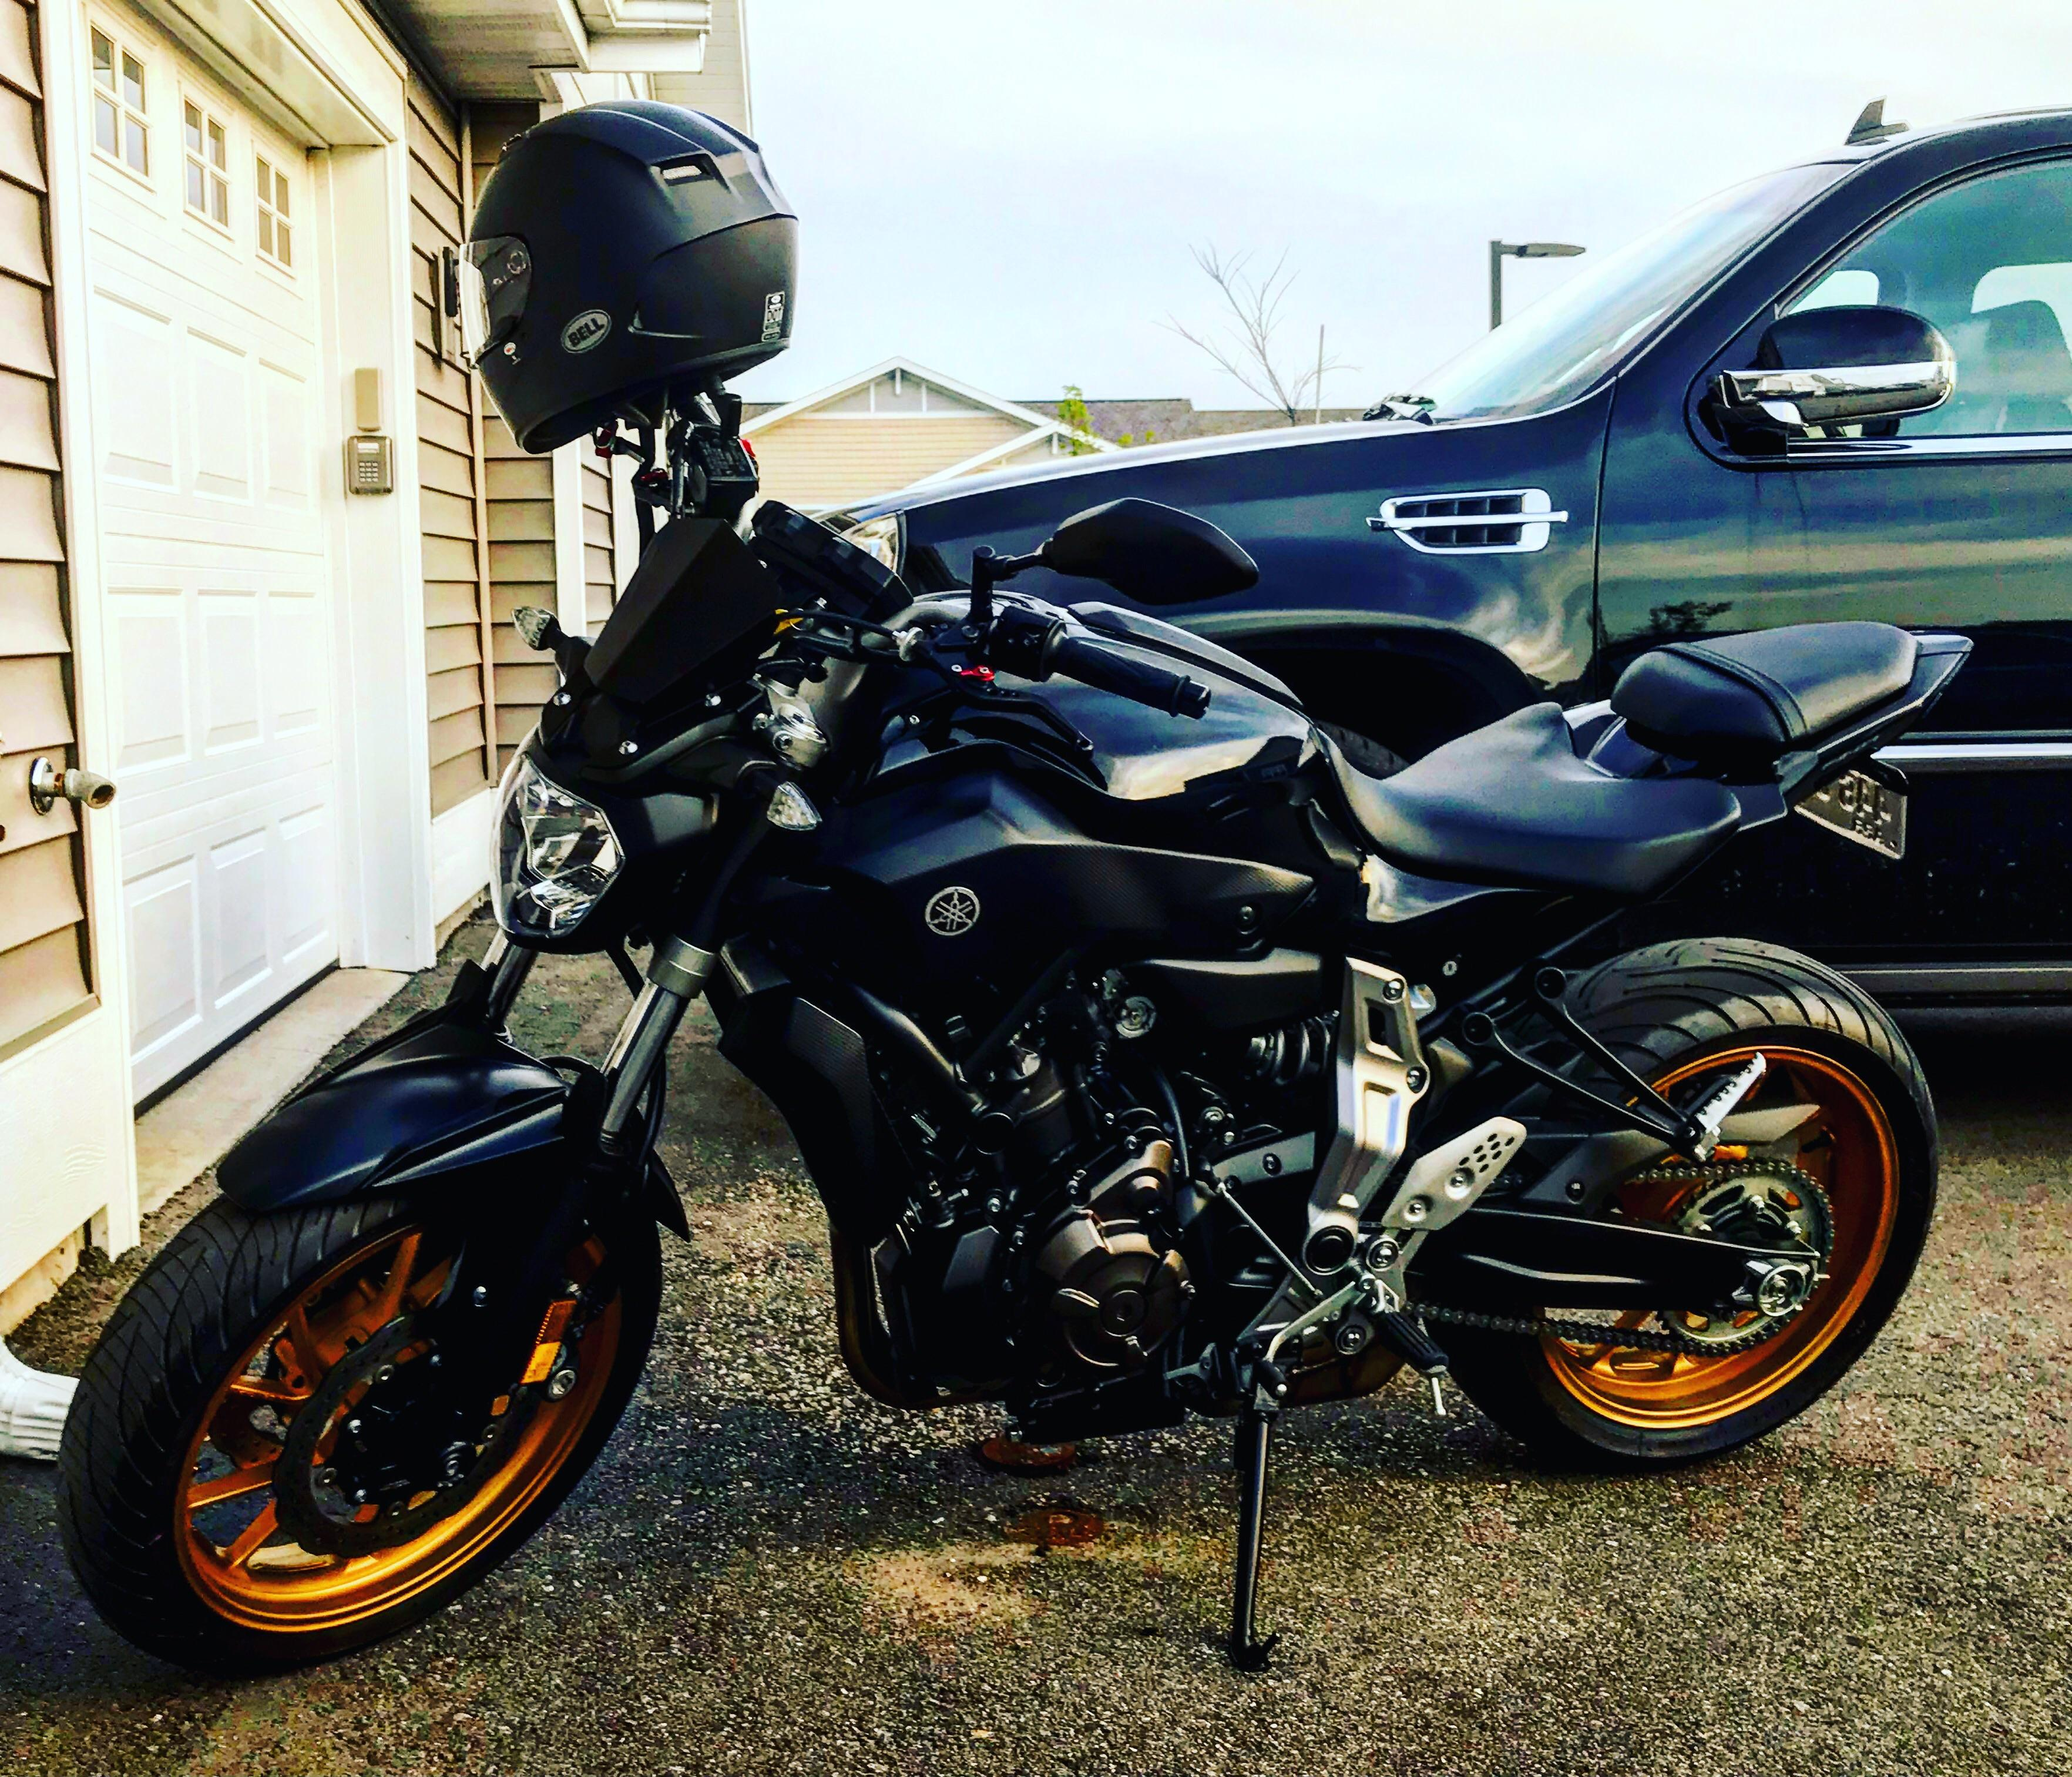 just bought a 2016 fz 07 yesterday